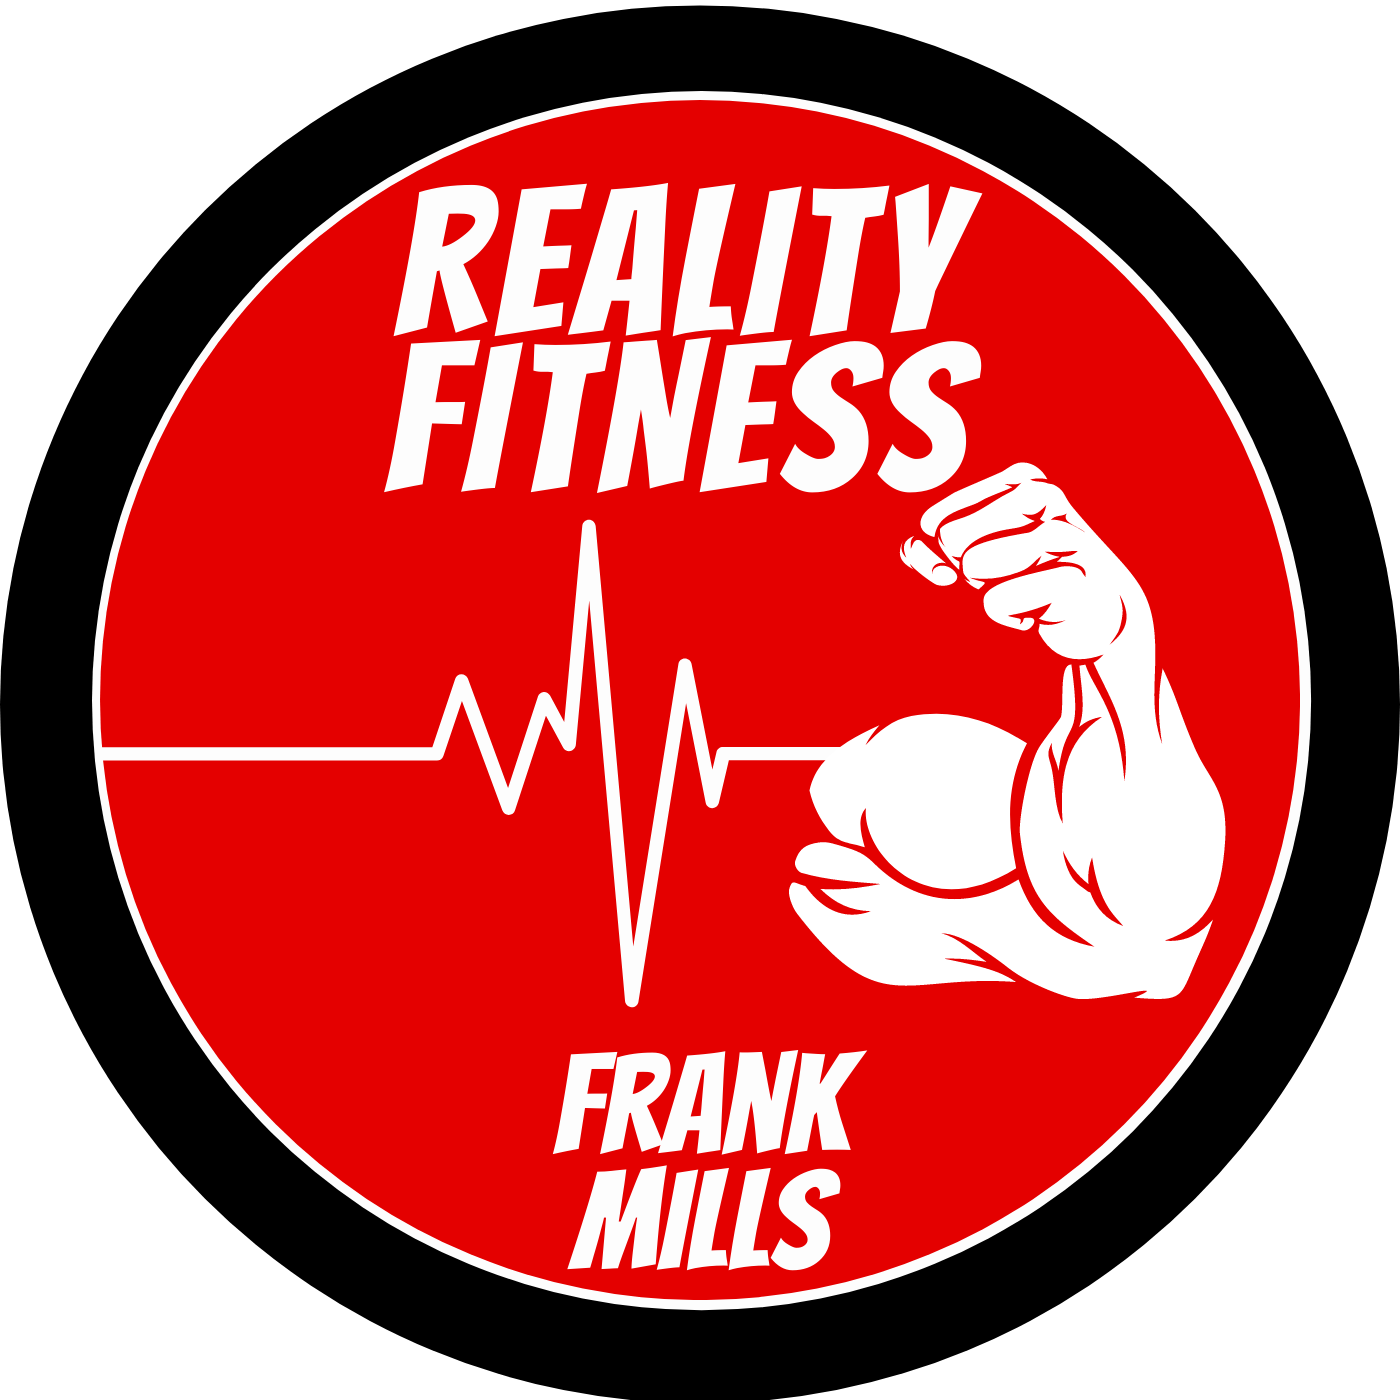 """Artwork for podcast Frank Mills """"Reality Fitness"""""""